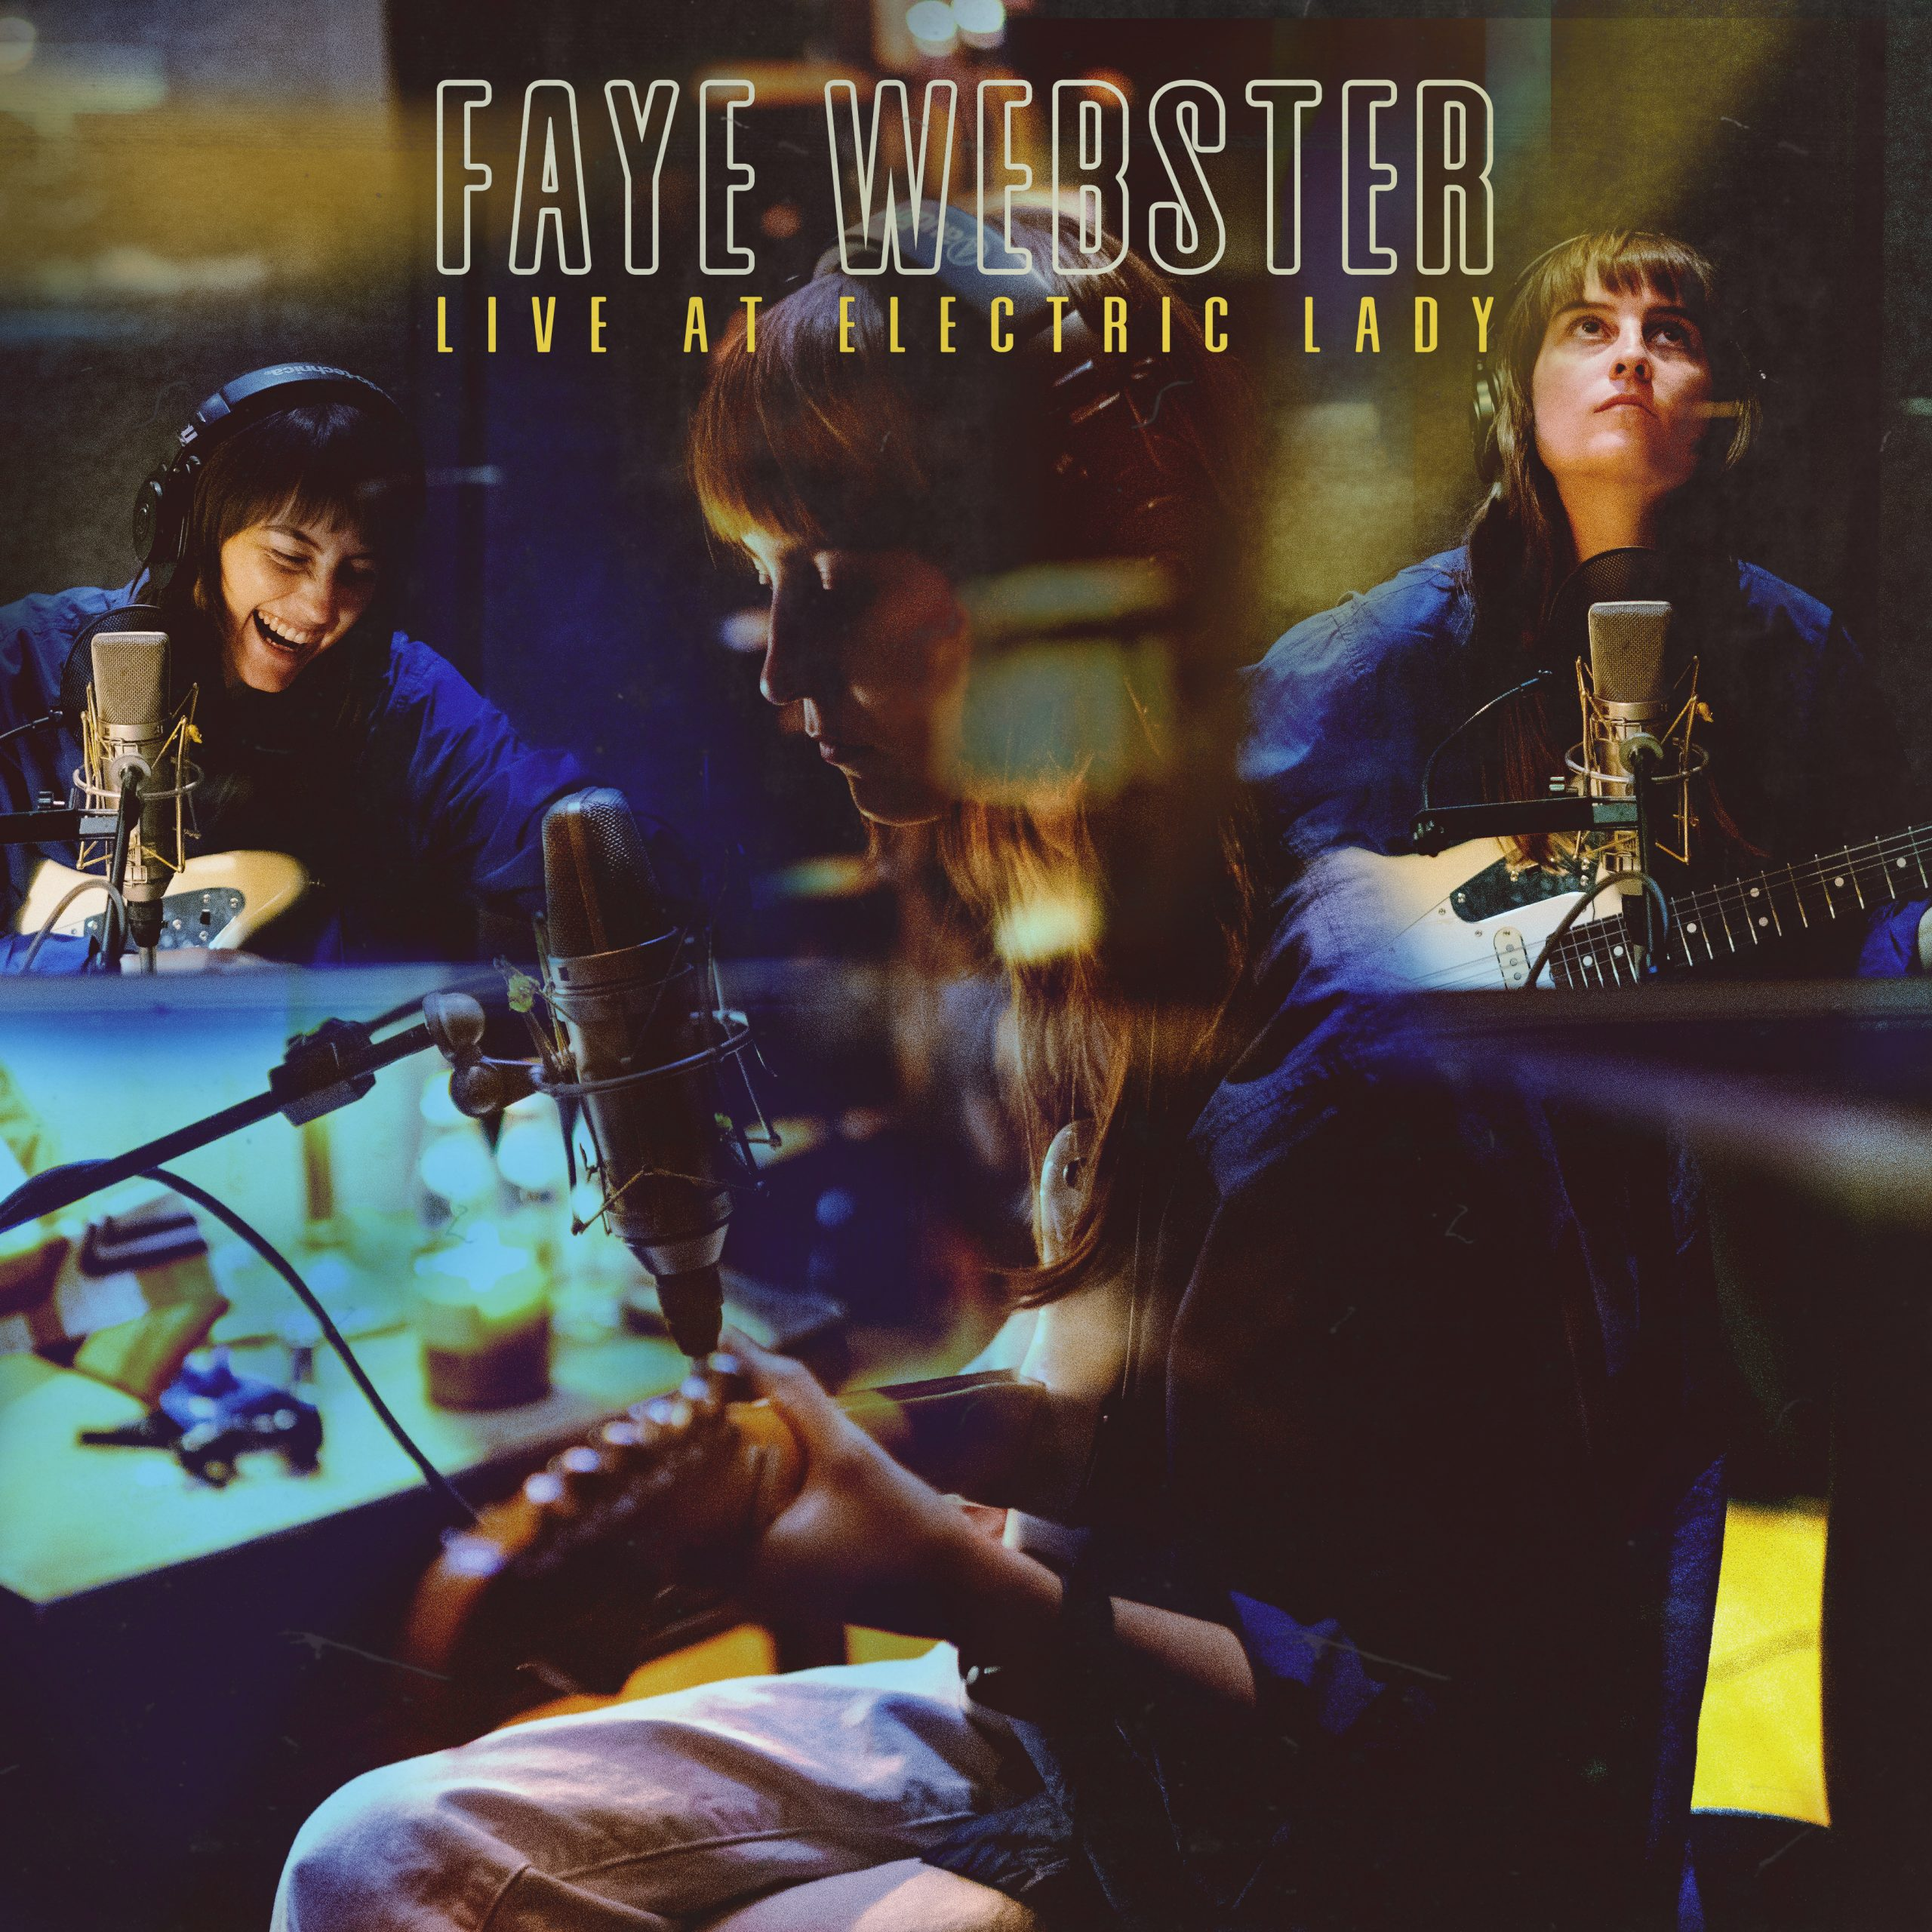 """Faye Webster – """"If You Need To, Keep Time On Me"""" (Fleet Foxes Cover)"""